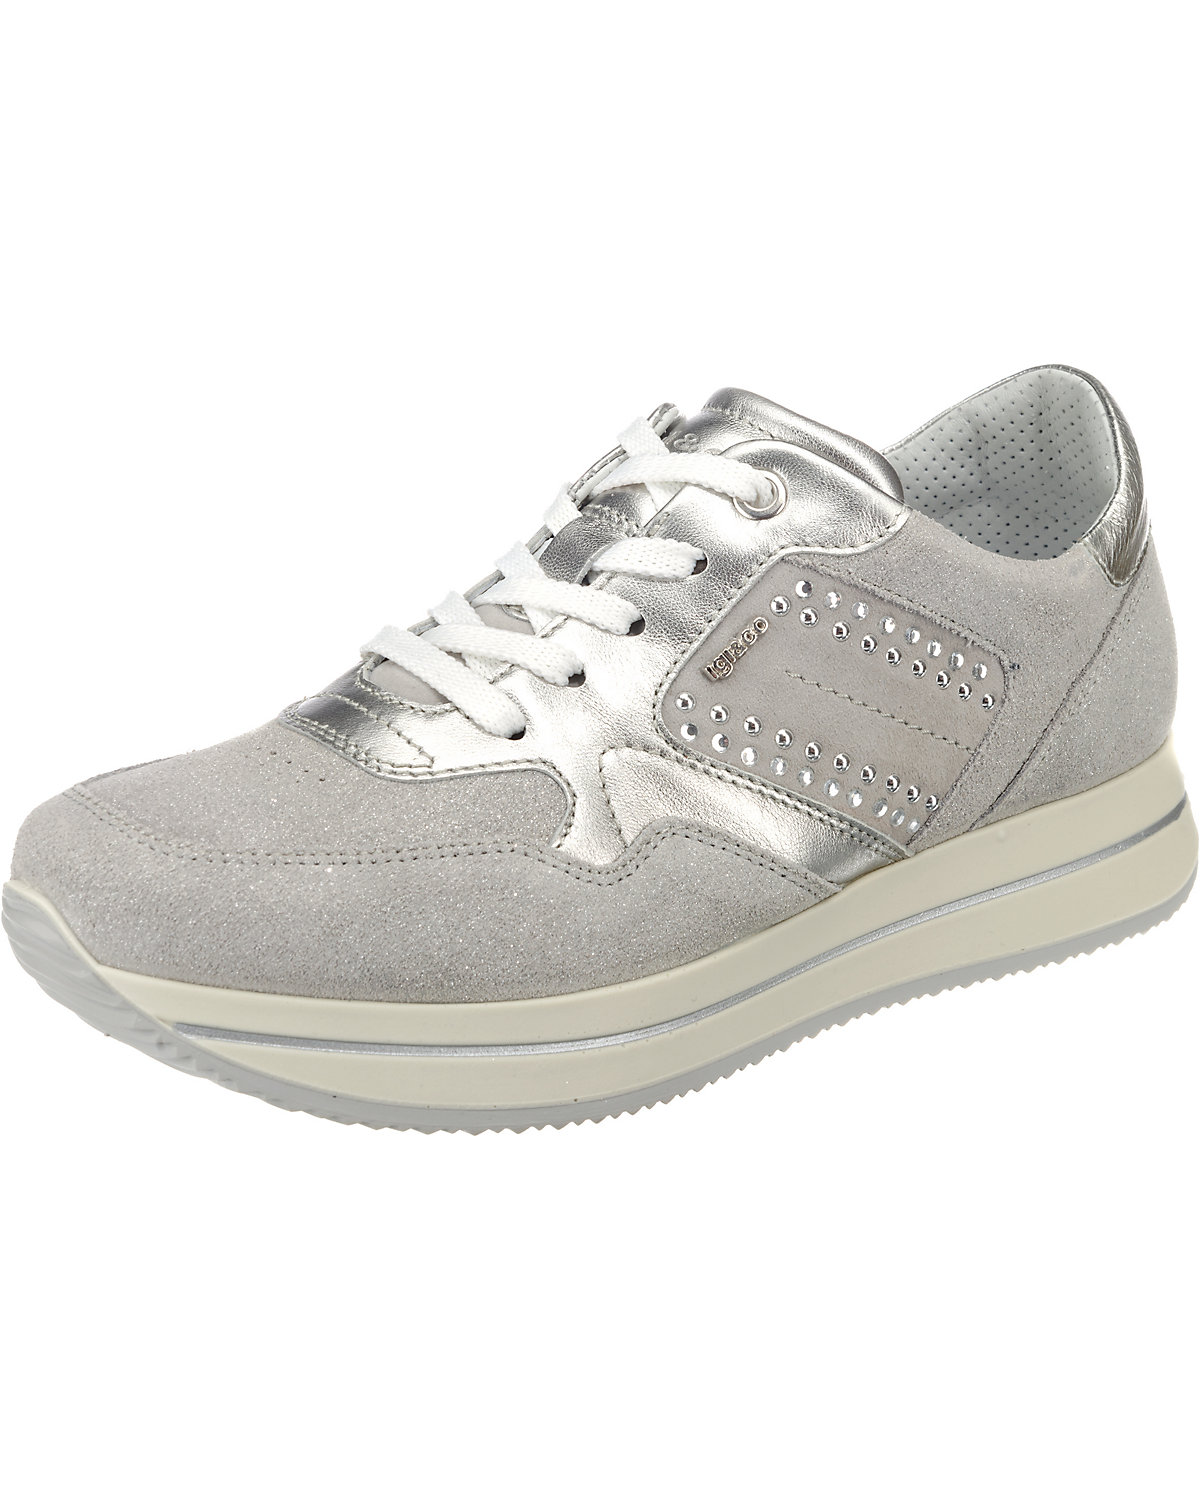 IGI & CO, DKU 11542 Sneakers Low, silber